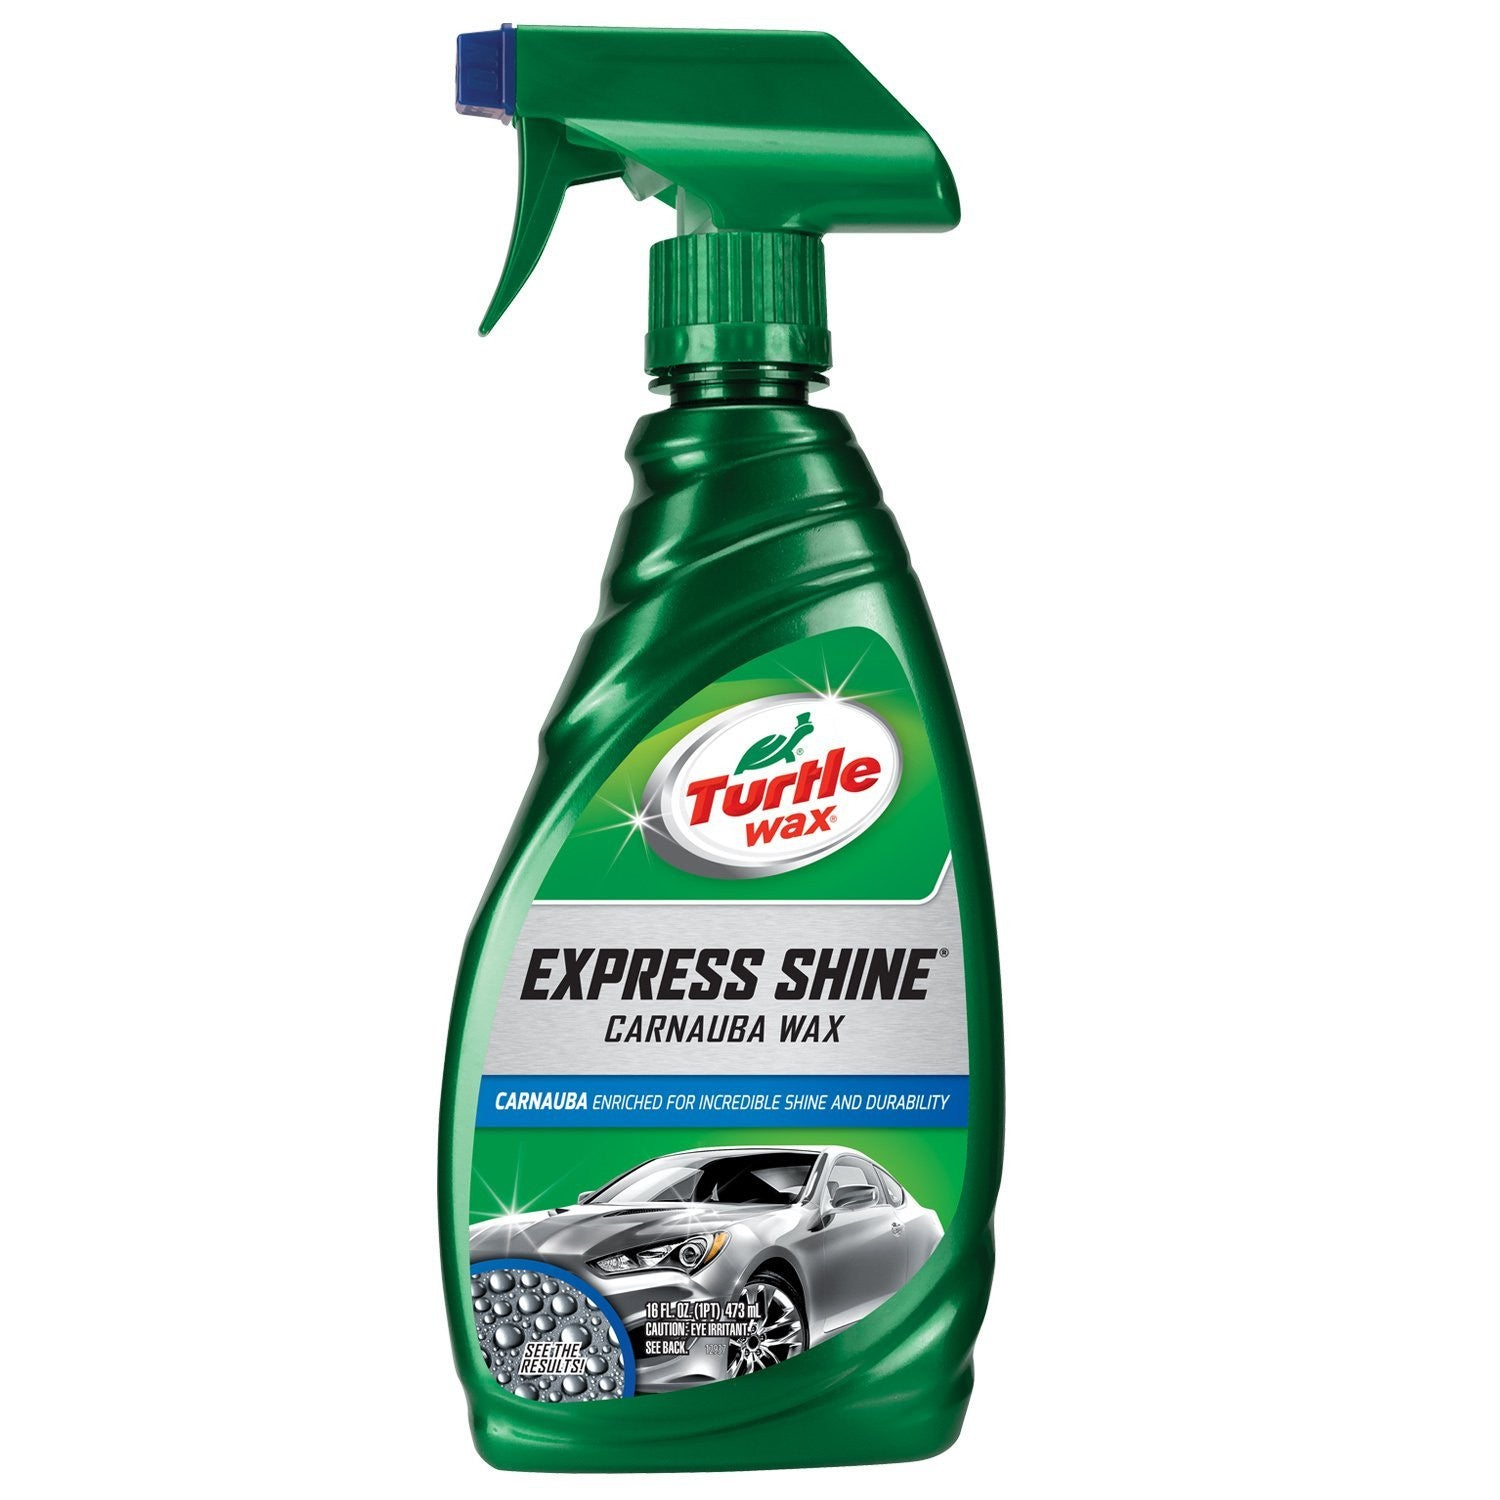 TURTLE WAX Wax Express Shine (16oz./473ml)